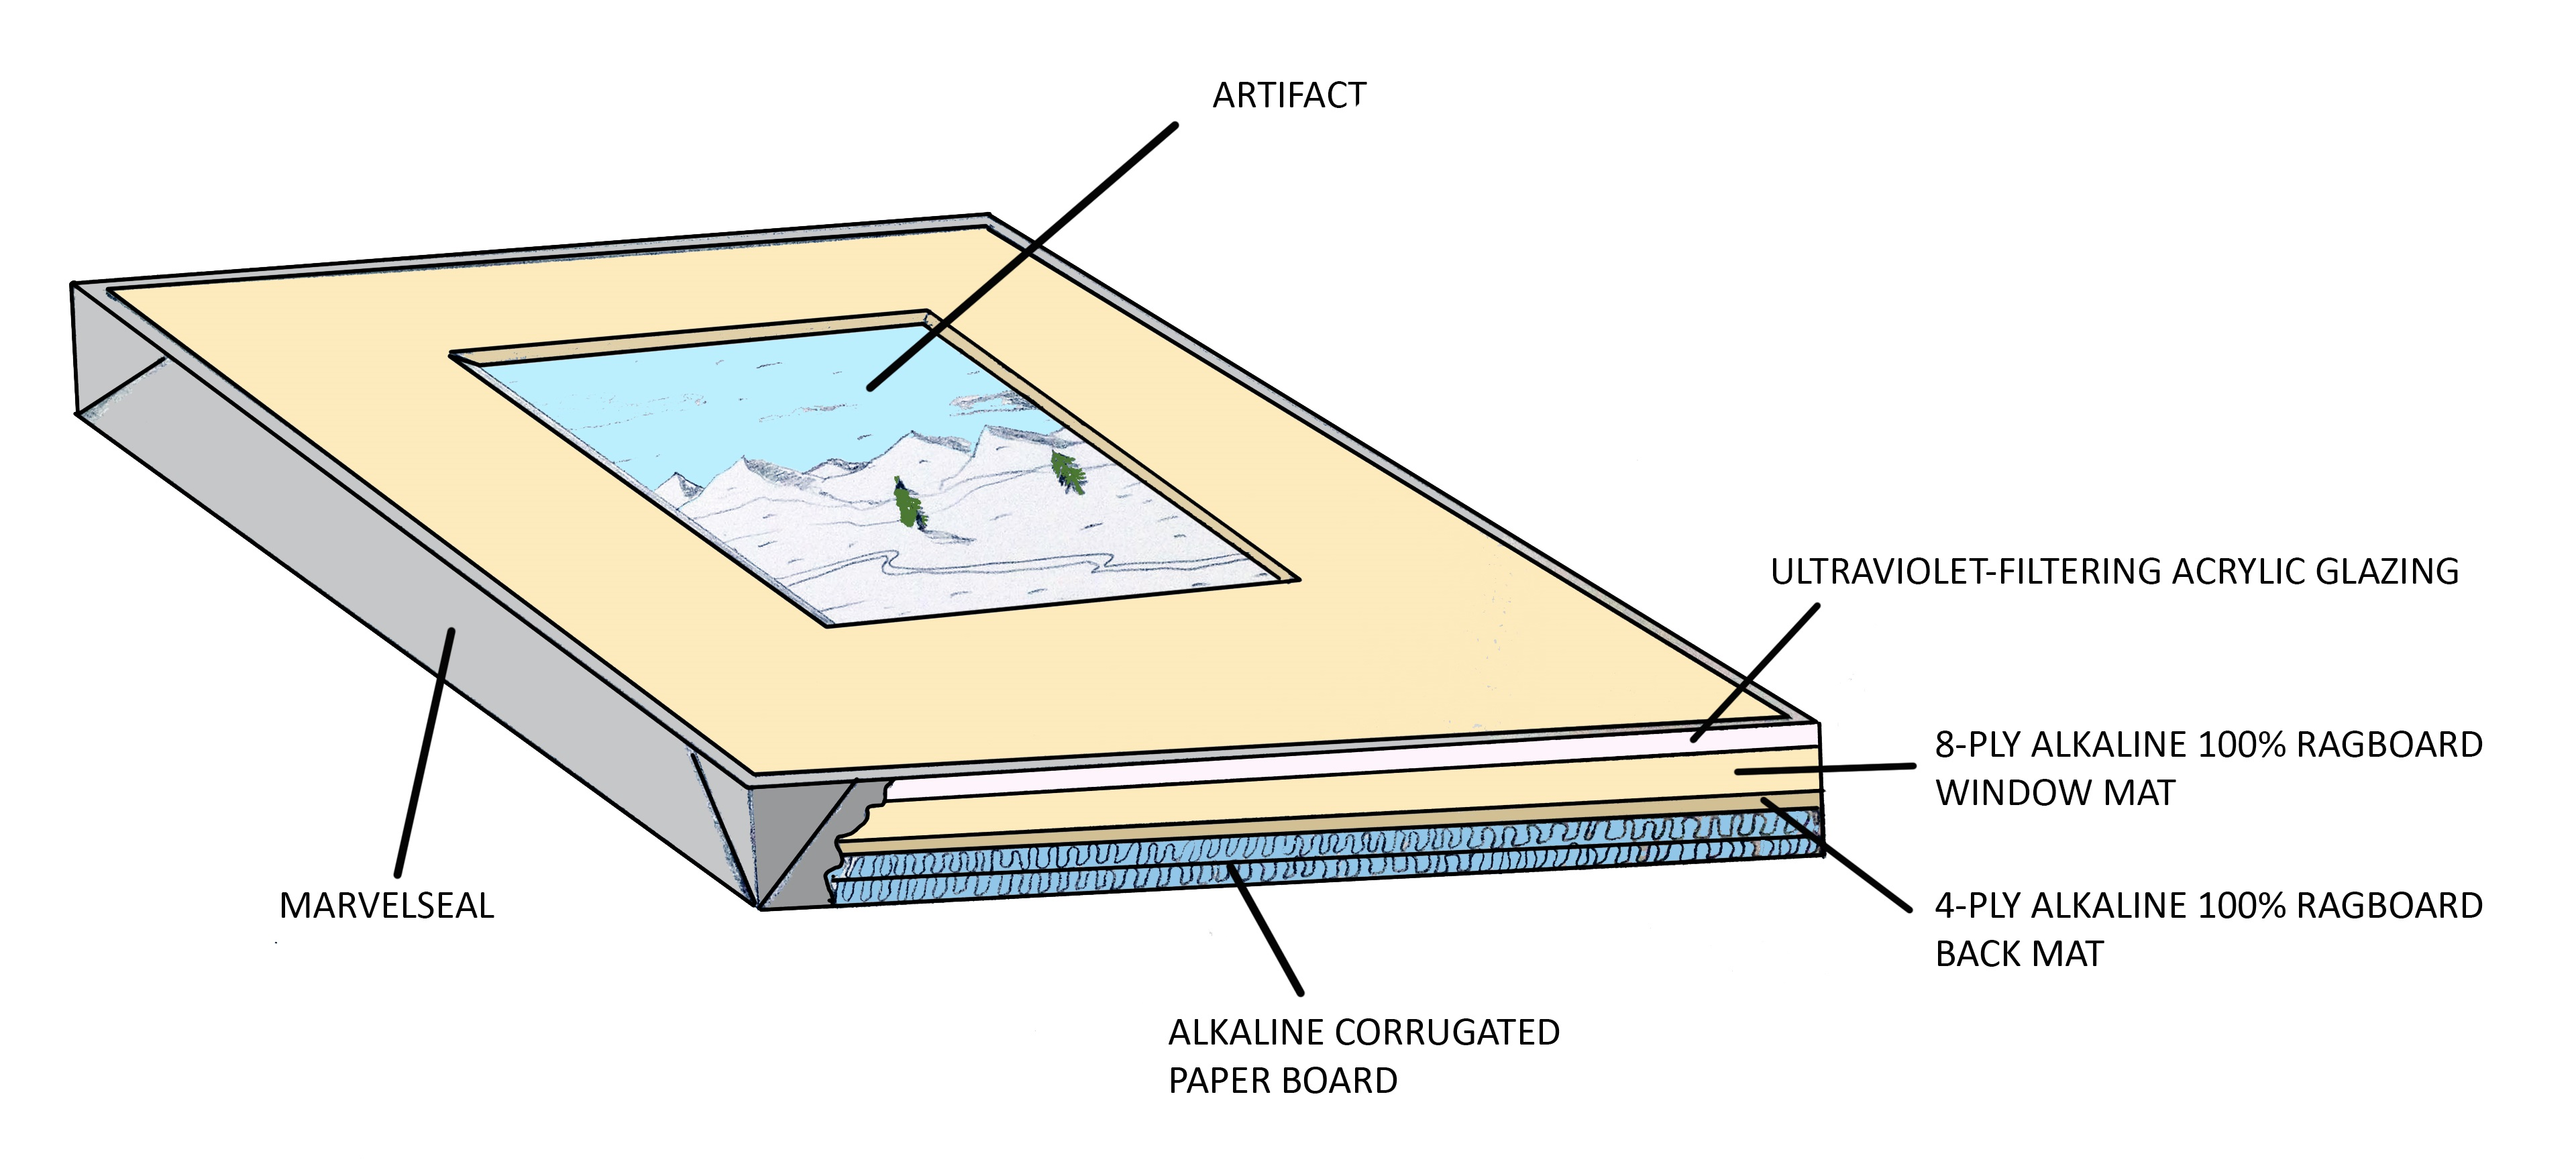 Diagram of a sealed package